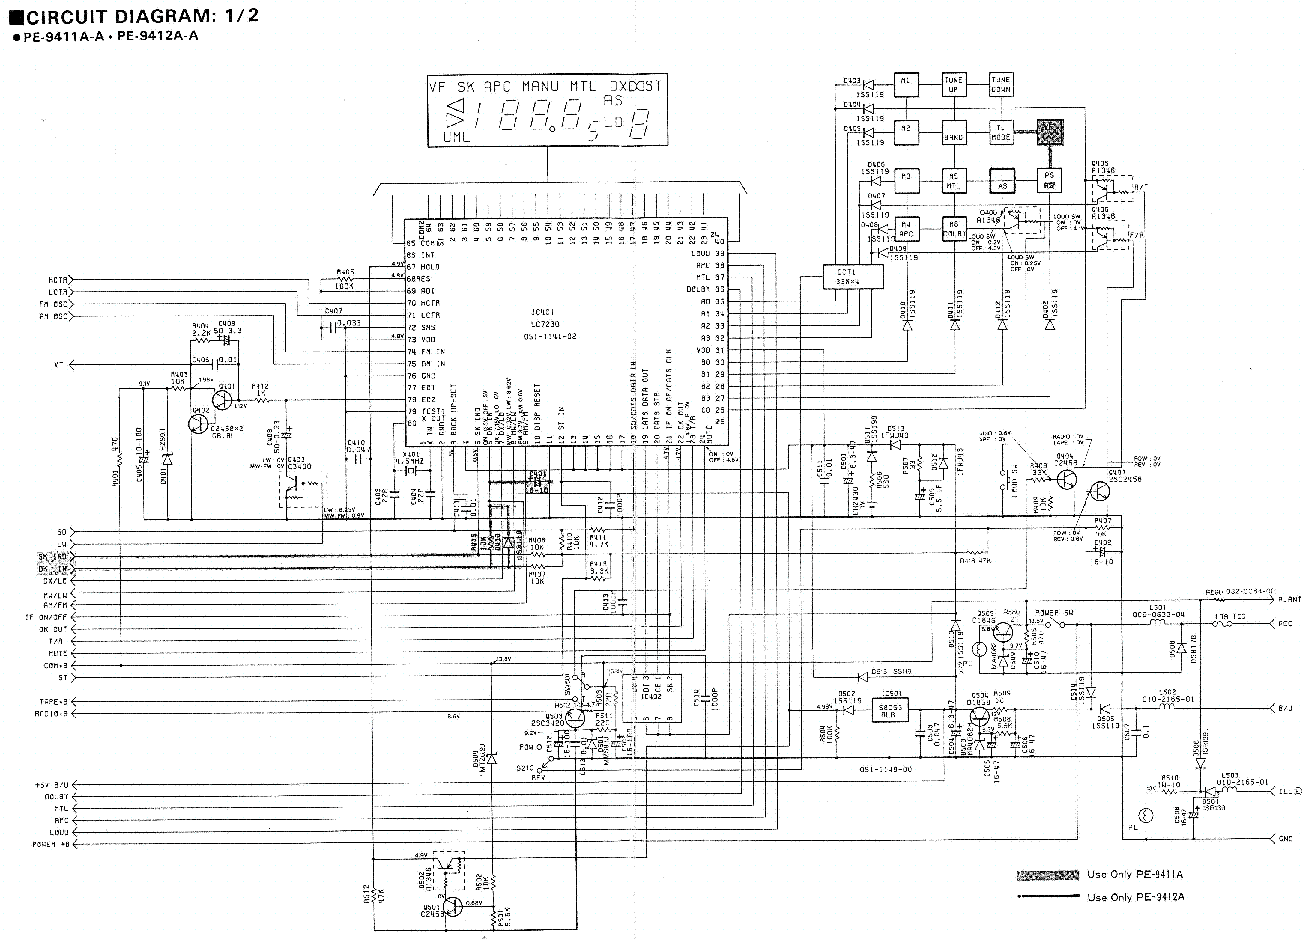 clarion vz401 wiring harness diagram clarion get free image about wiring diagram